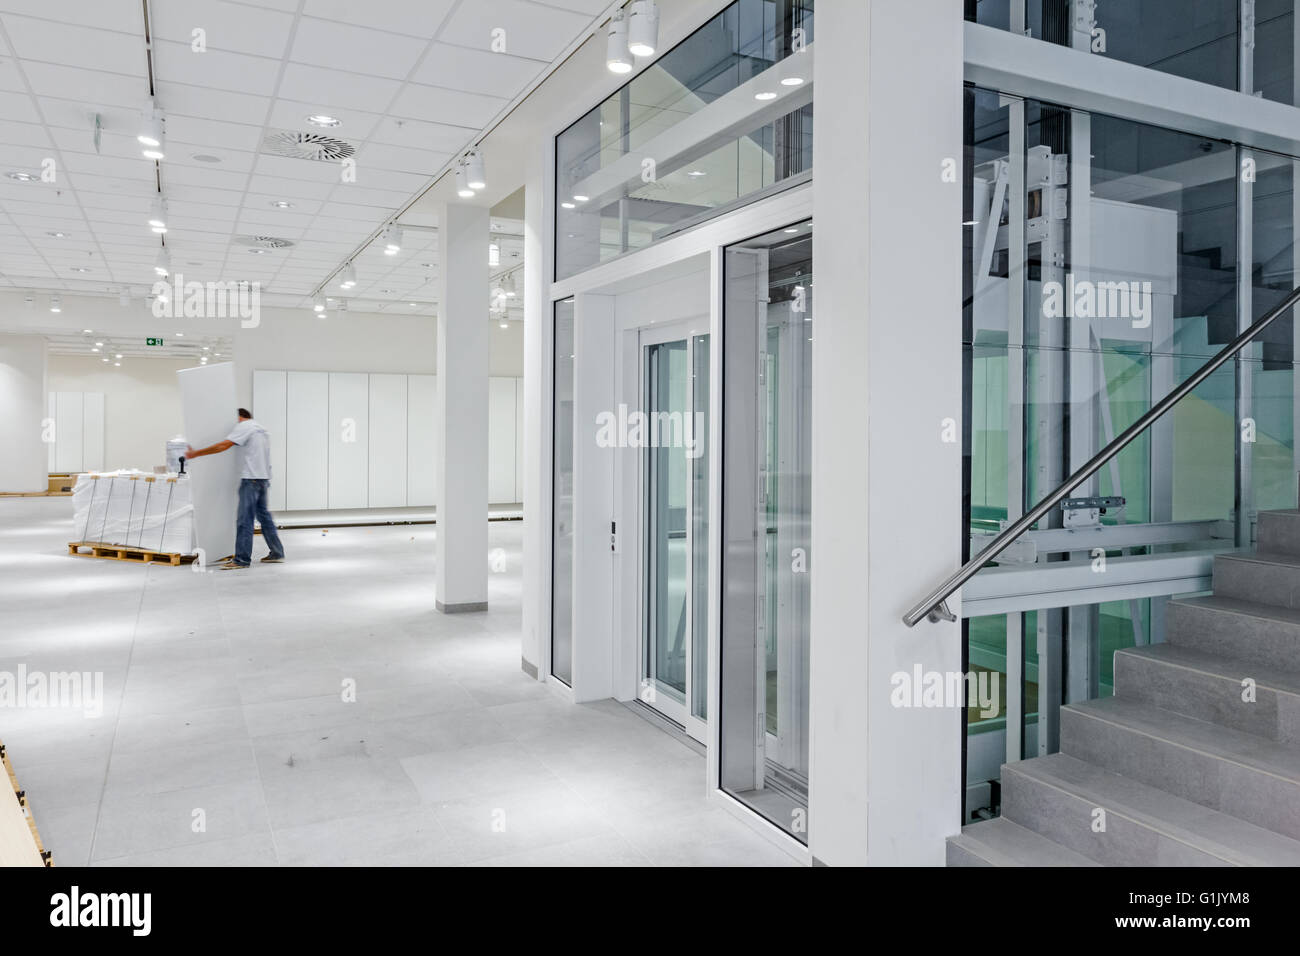 View on staircase and glass elevator in a modern business centre. - Stock Image